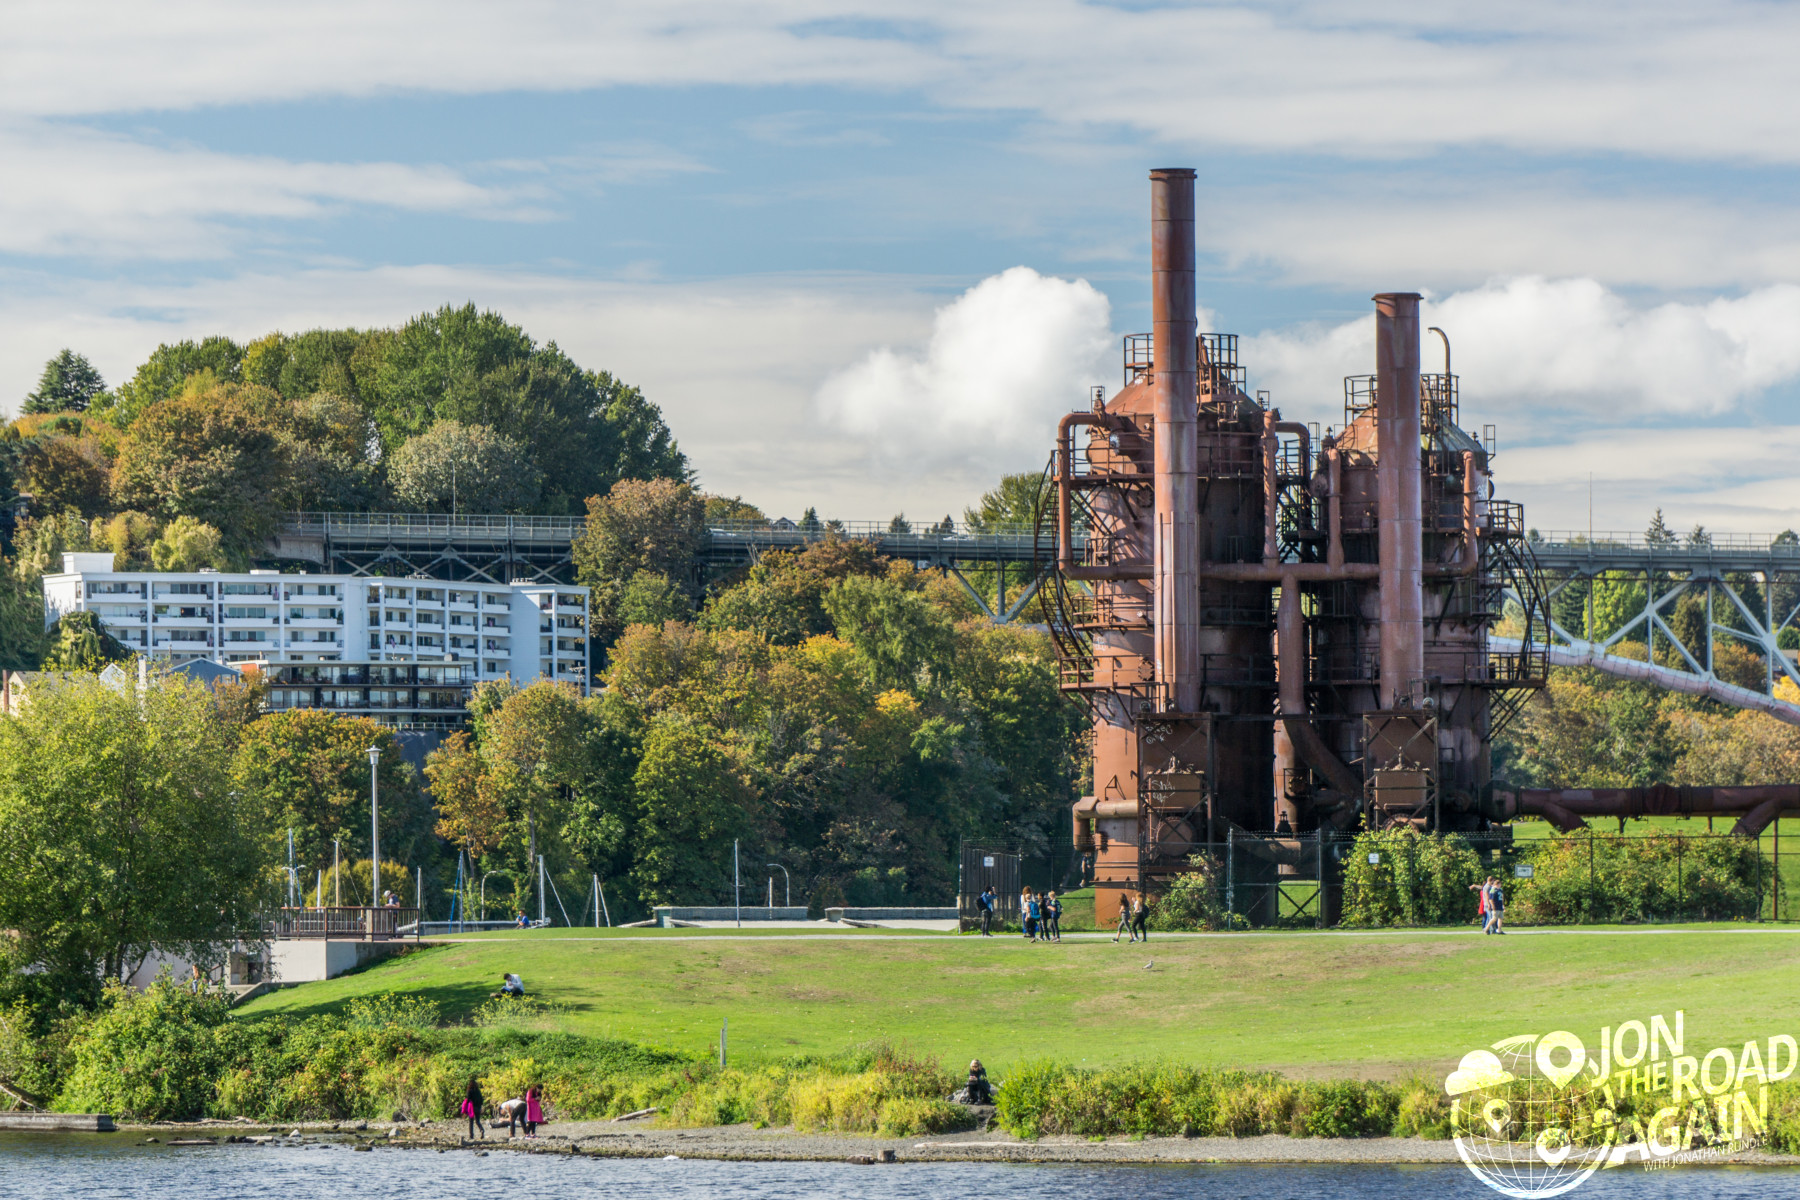 Gas works park from Lake Union